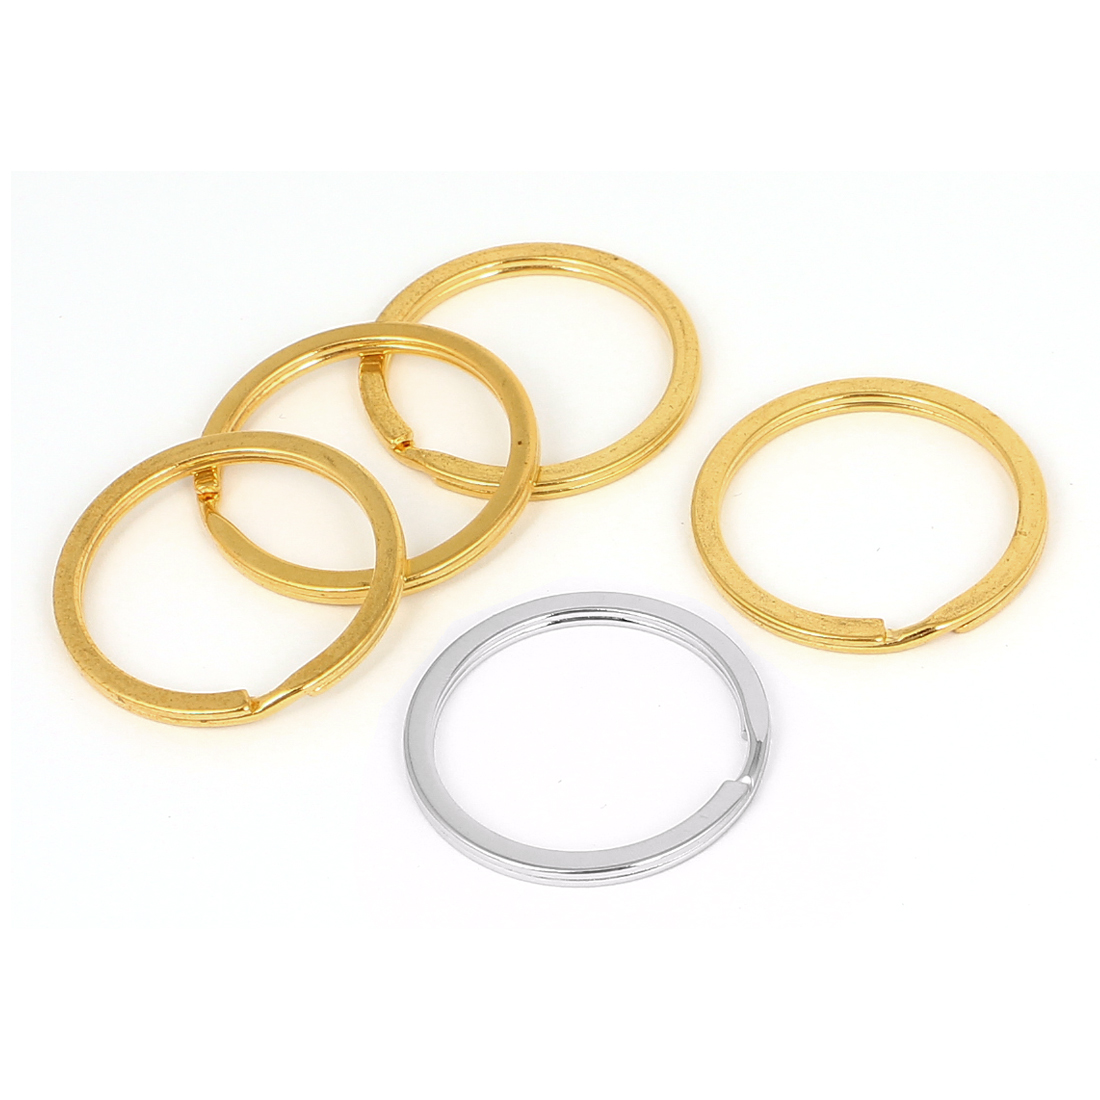 35mm Outer Dia Metal Double Loop Split Ring Keyring 5pcs